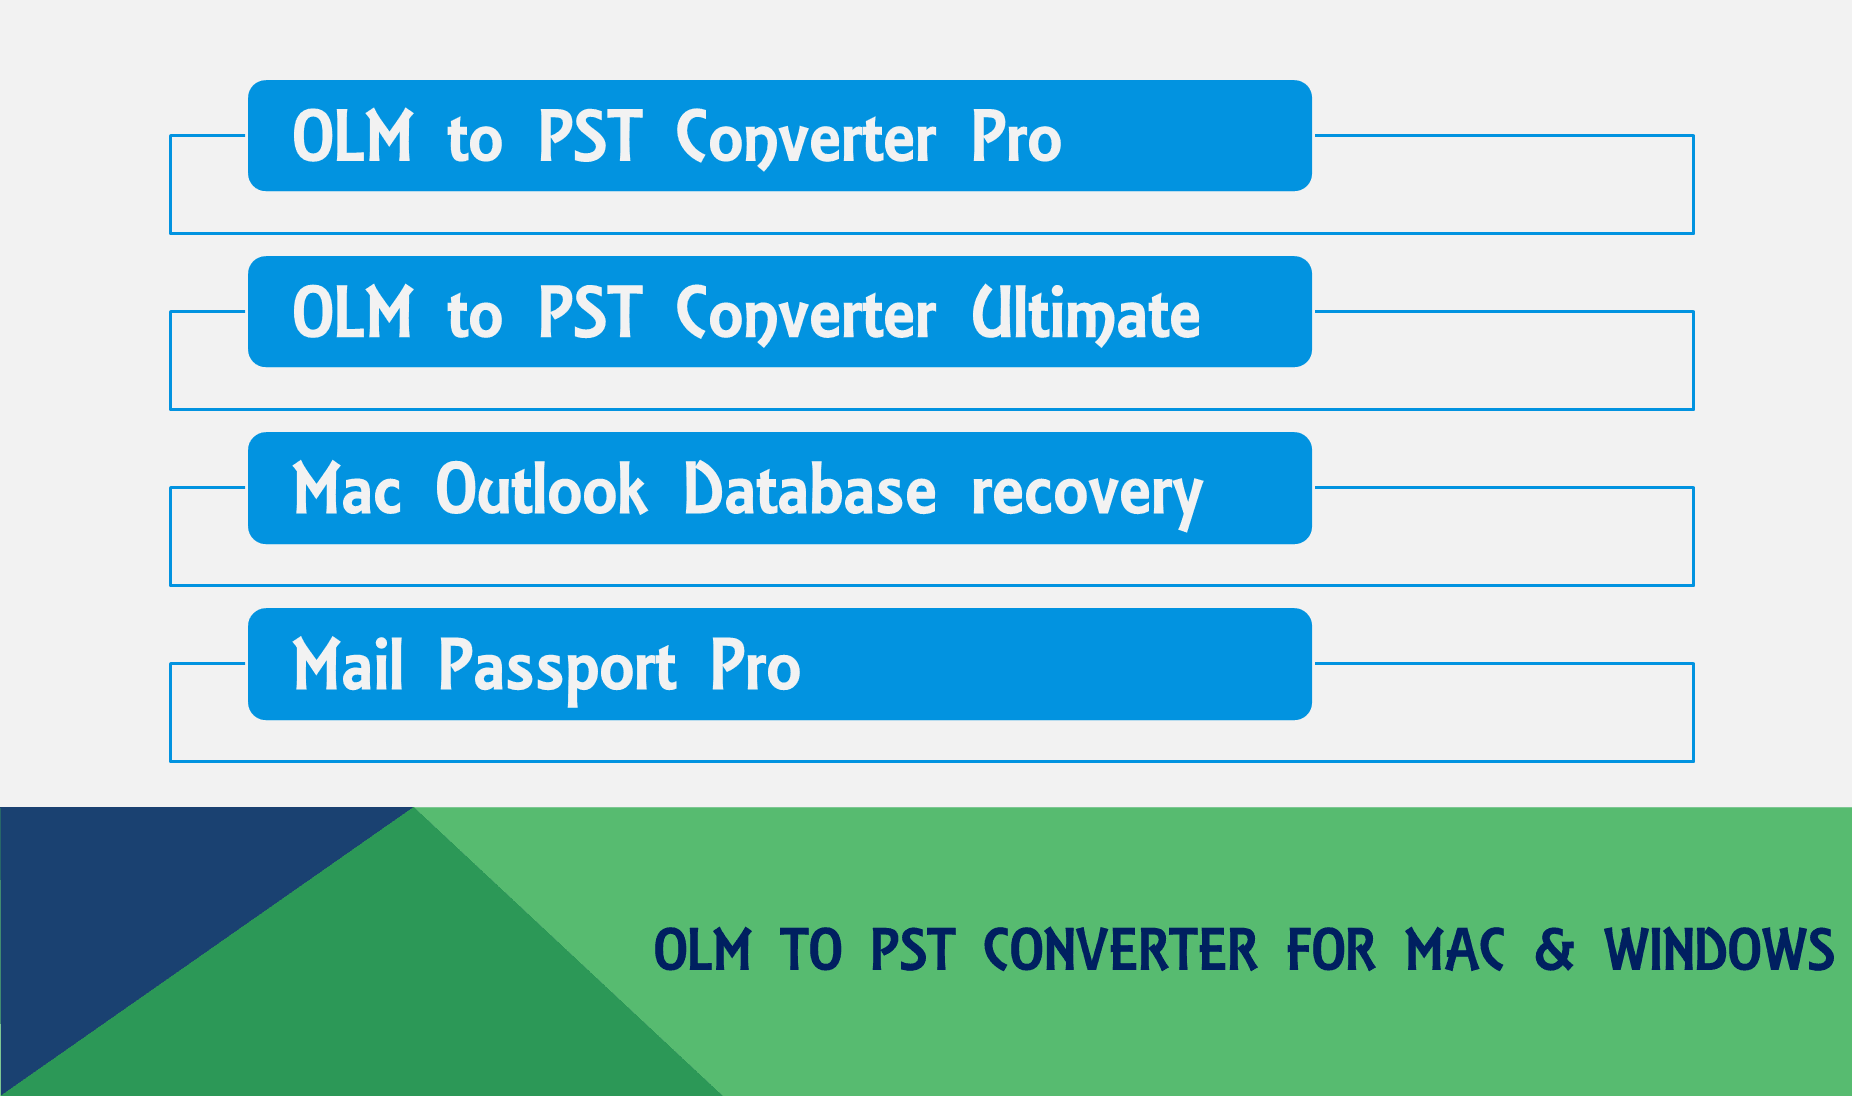 olm to pst converter for mac and windows